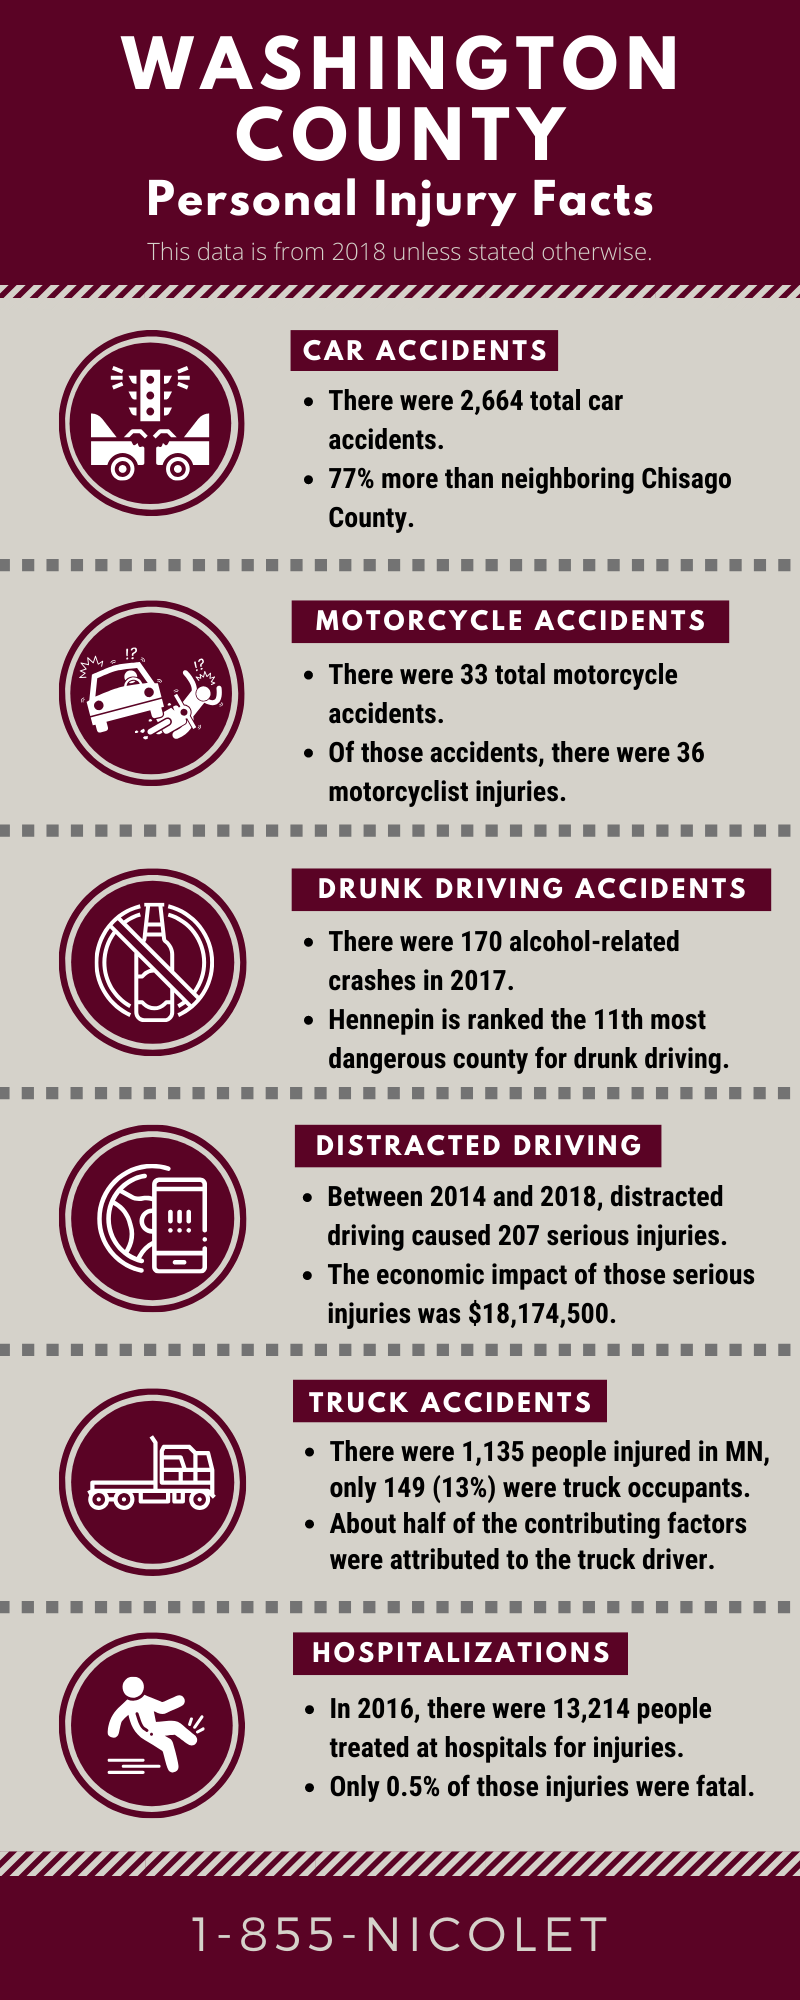 washington county personal injury facts infographic